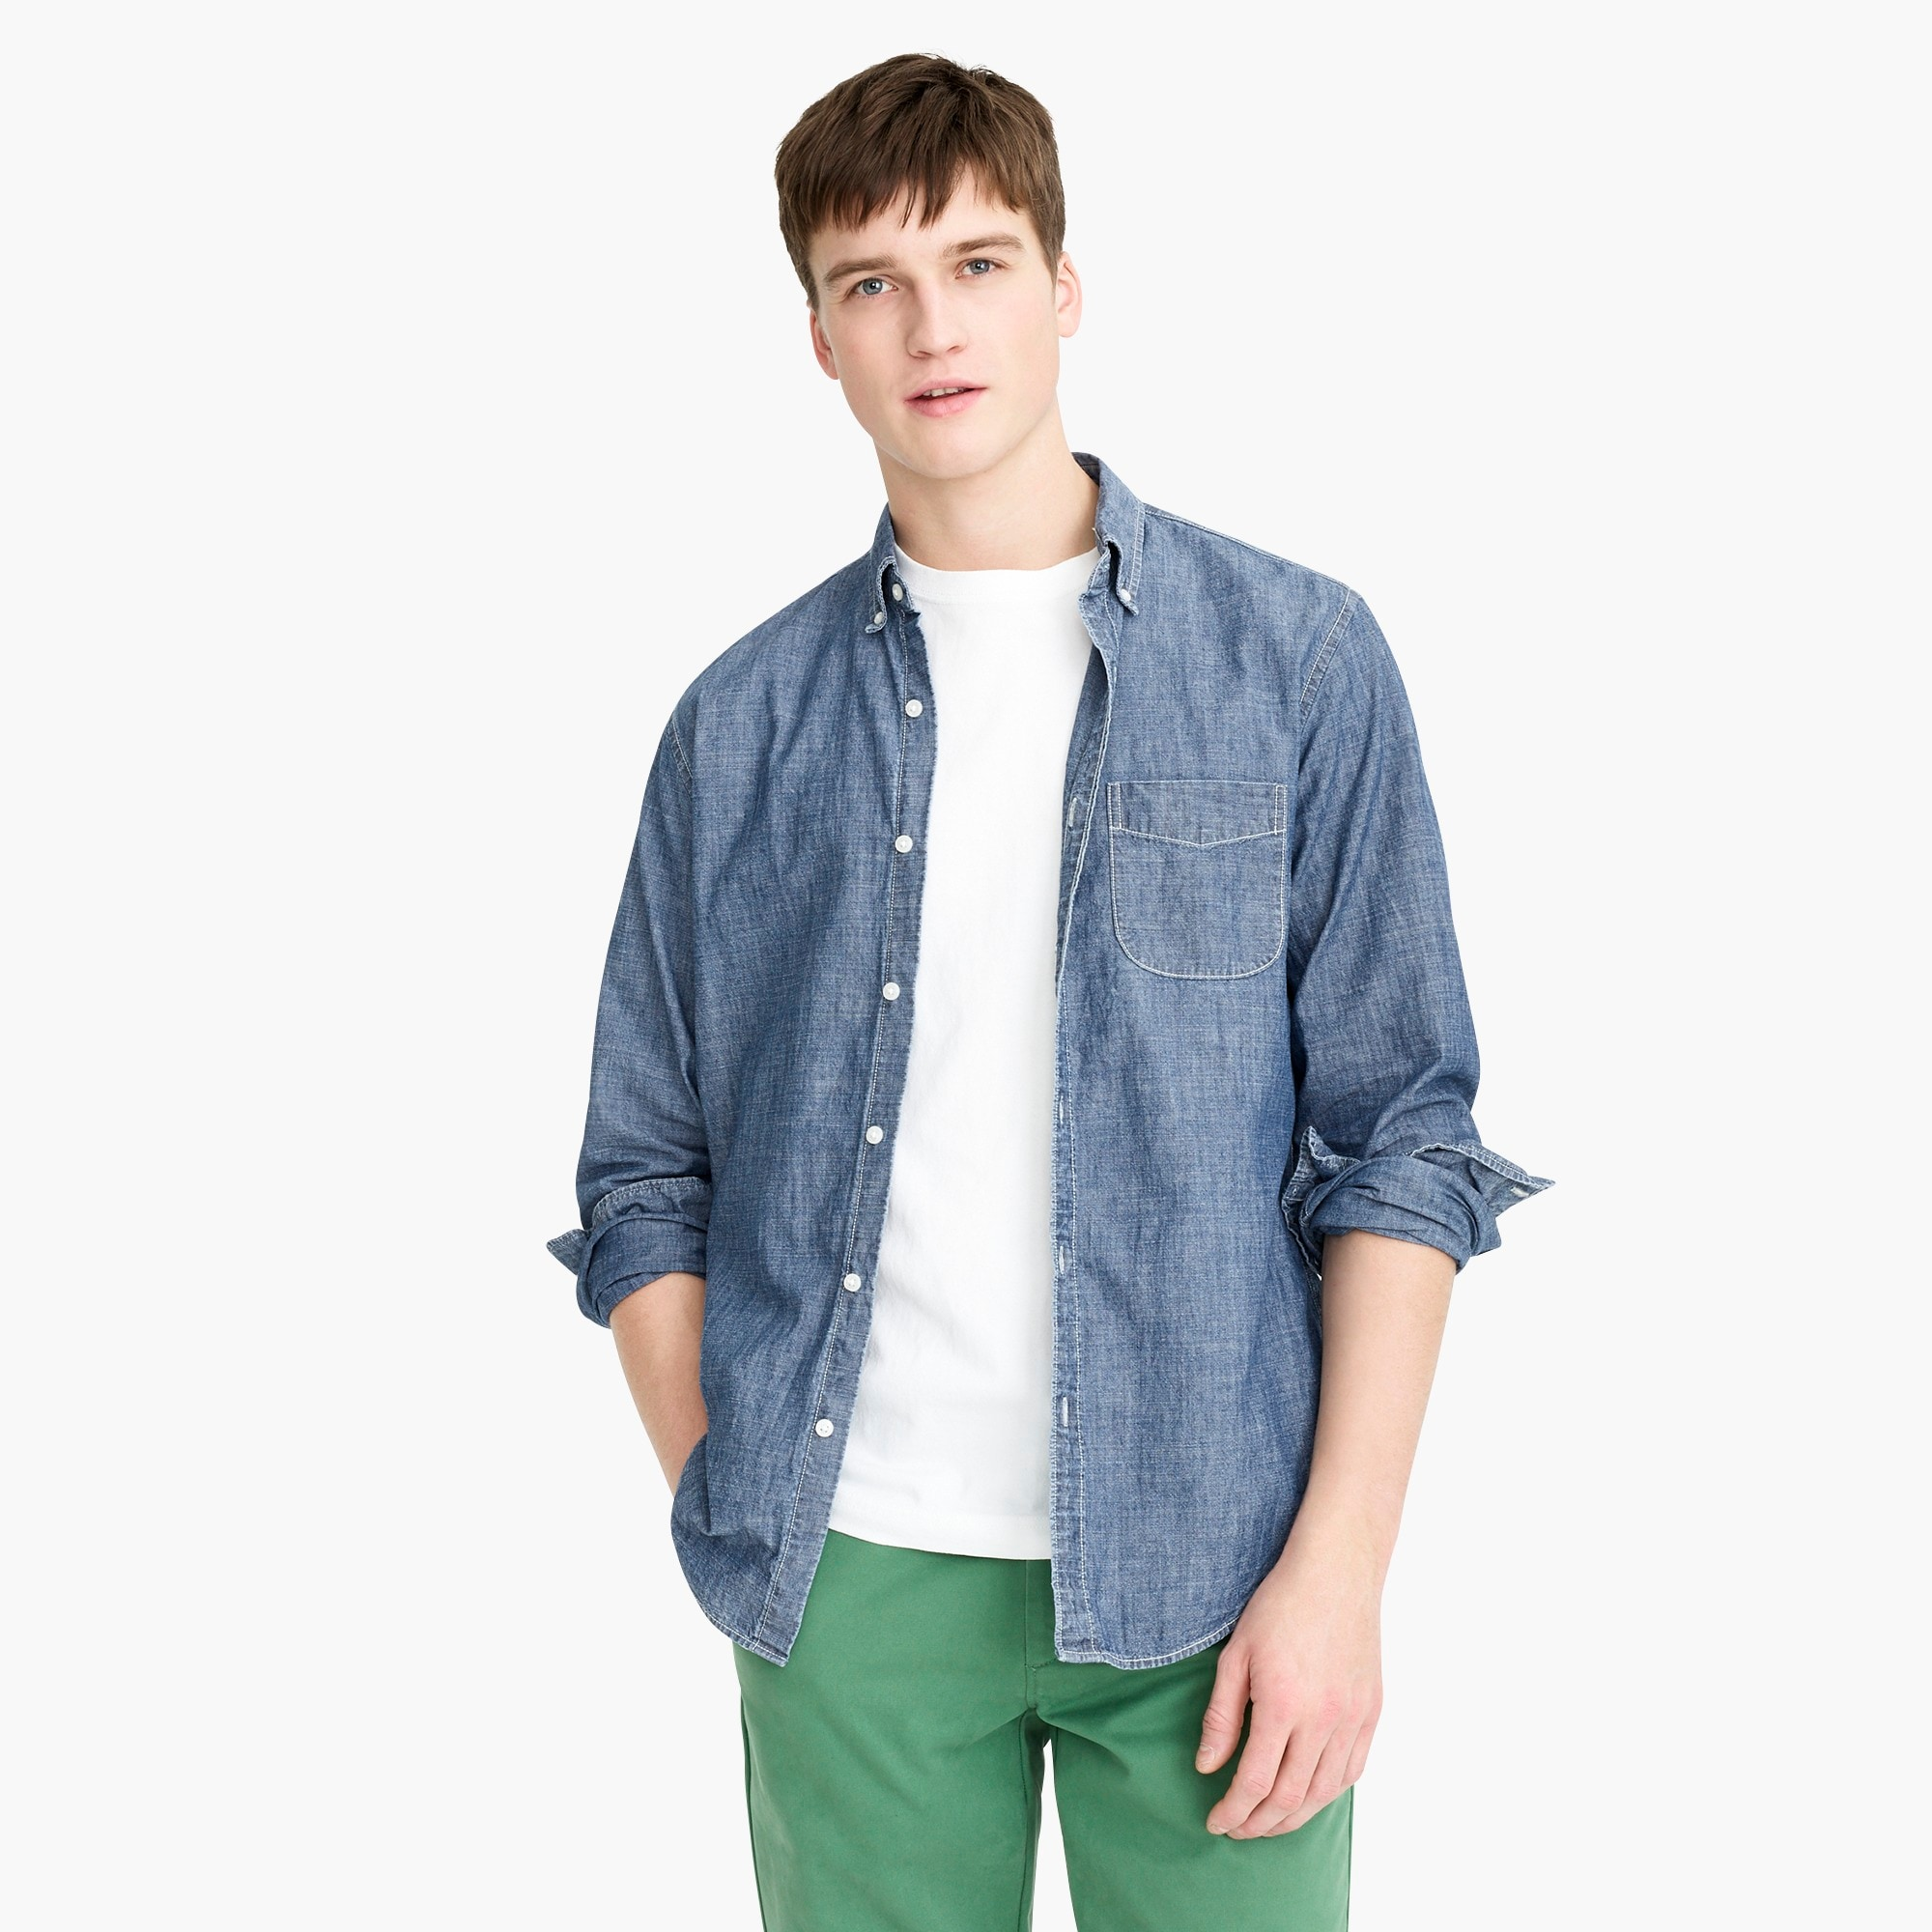 Untucked one-pocket chambray shirt in dark wash